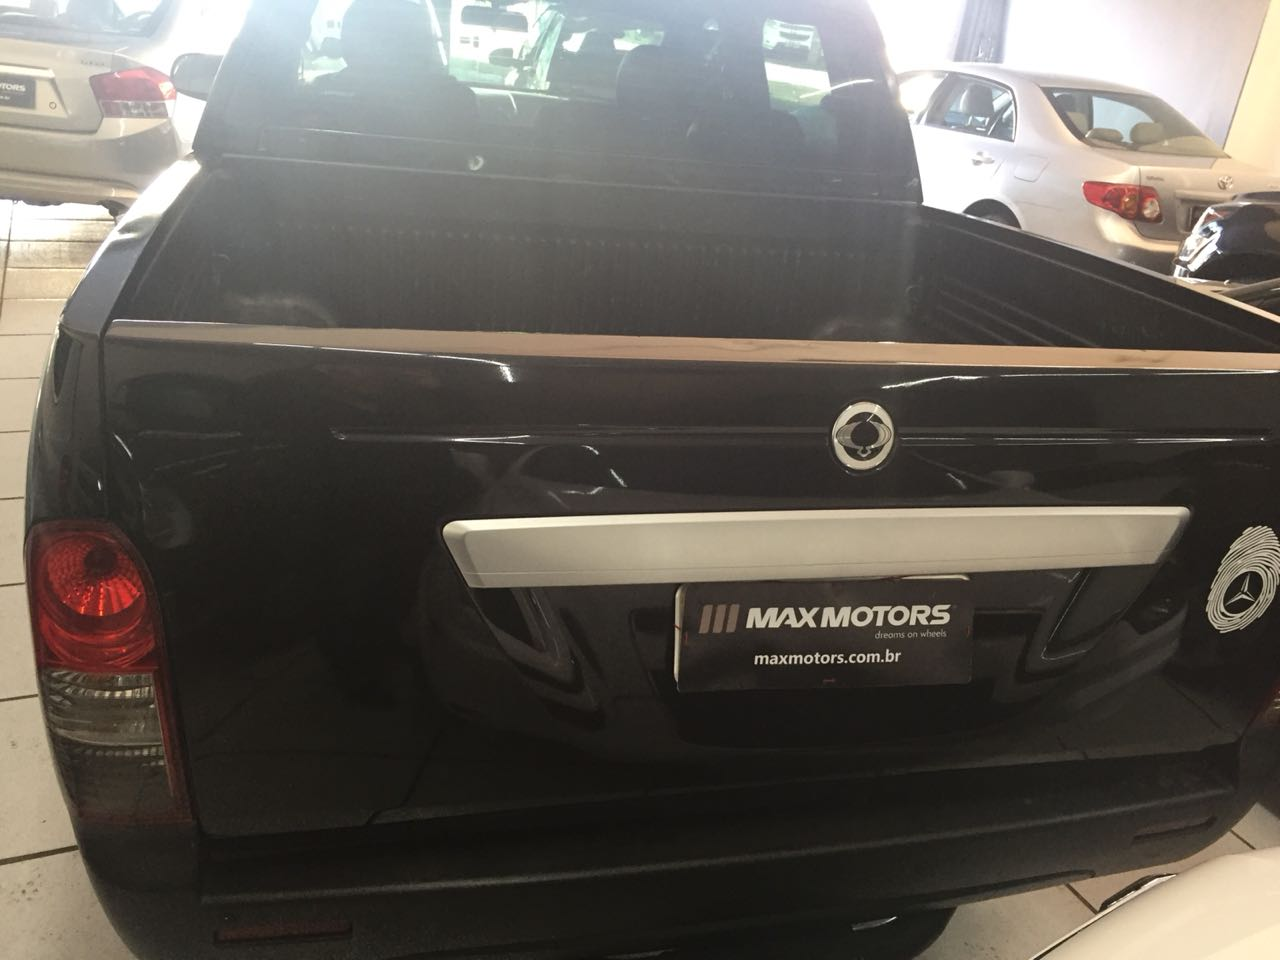 SSANGYONG ACTYON SPORTS - 2010 / 2010 2.0 GL 4X4 CD 16V TURBO INTERCOOLER DIESEL 4P AUTOMÁTICO